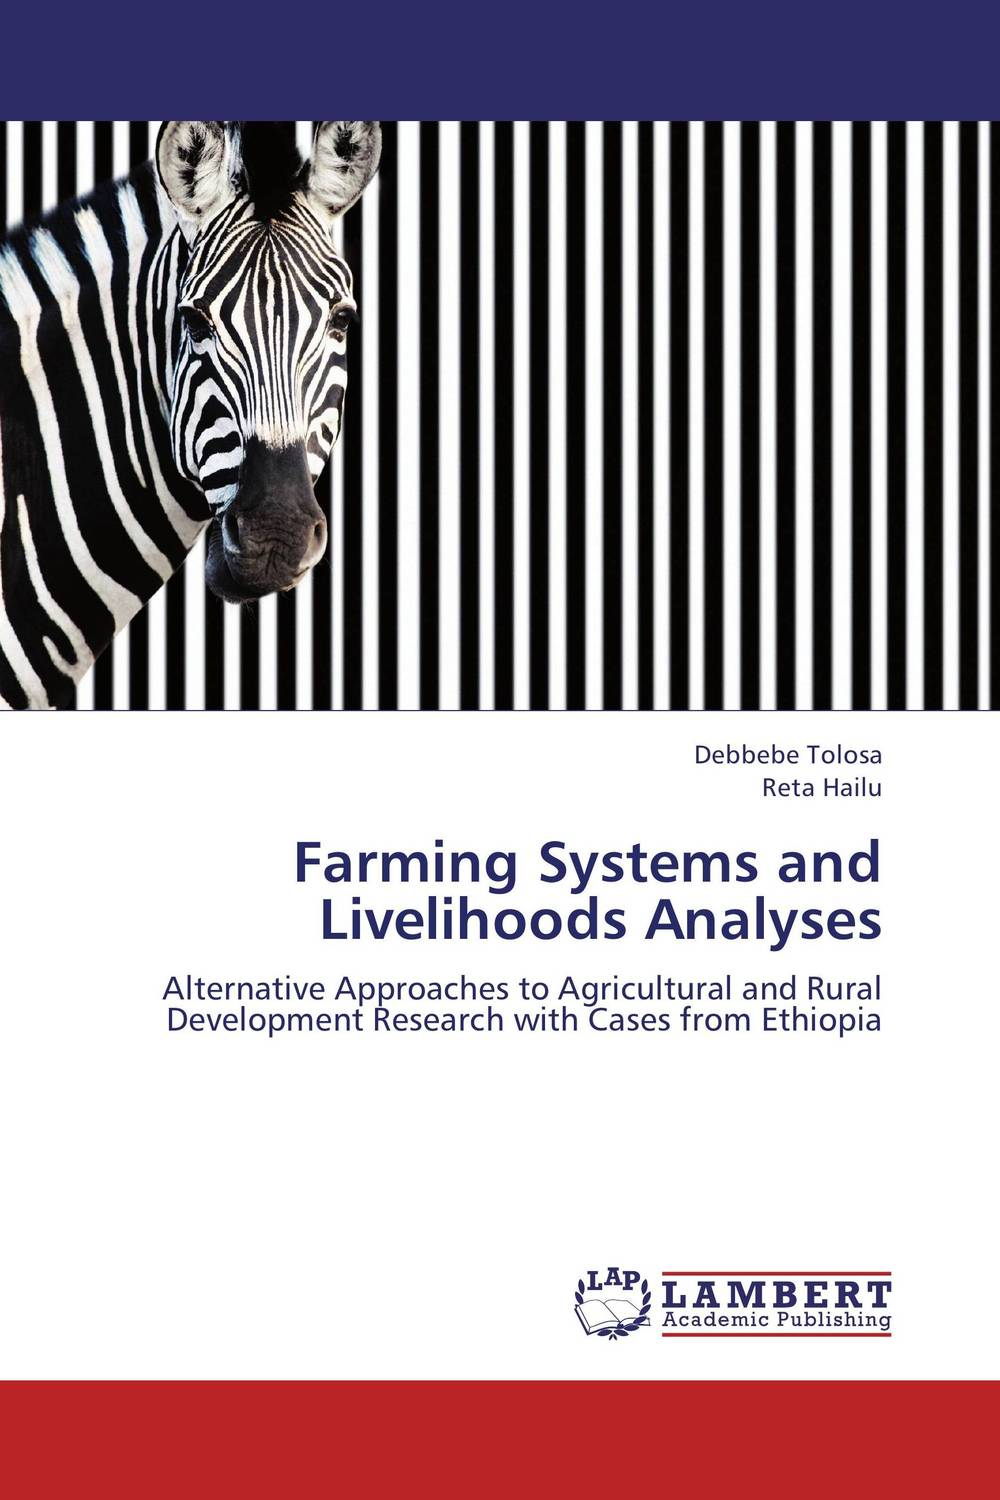 Farming Systems and Livelihoods Analyses marvin tolentino and angelo dullas subjective well being and farming experiences of filipino children